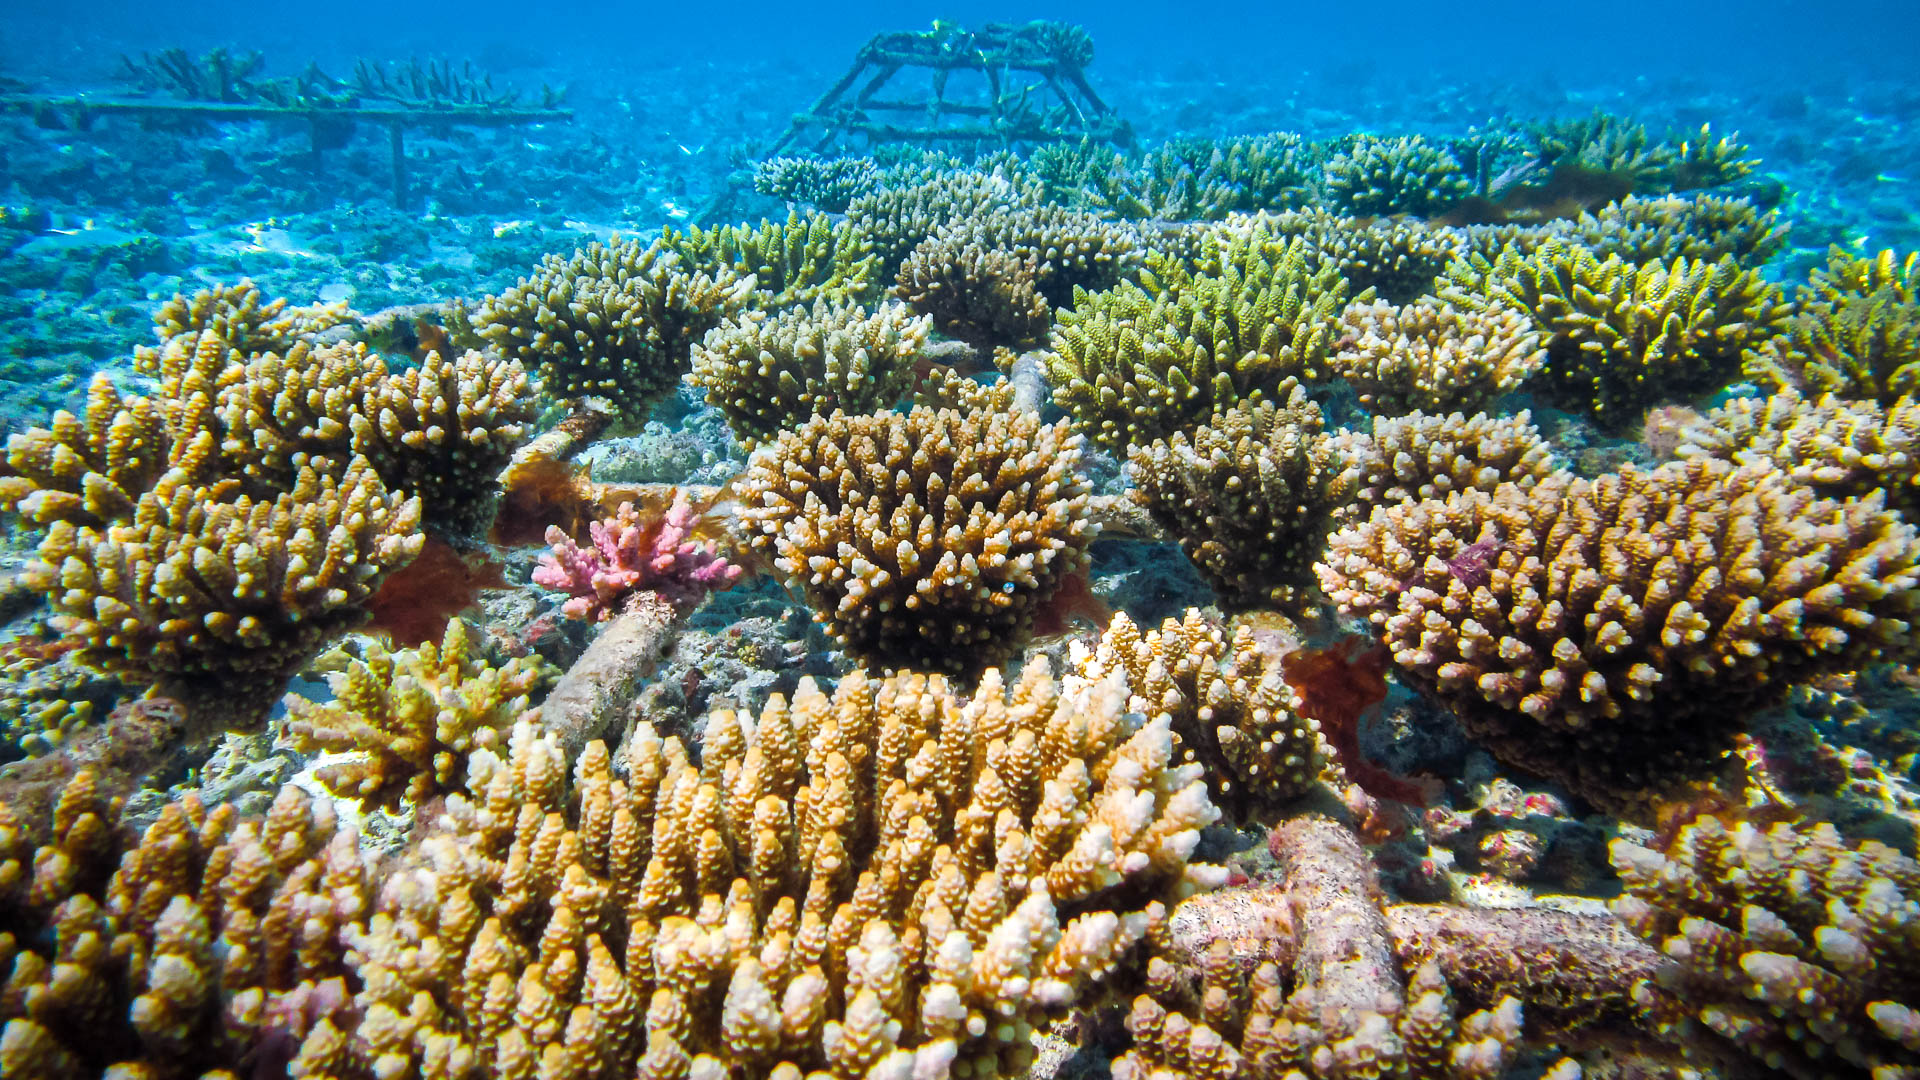 Reefscapers - NOAA coral bleaching forecast for May 2019 Maldives